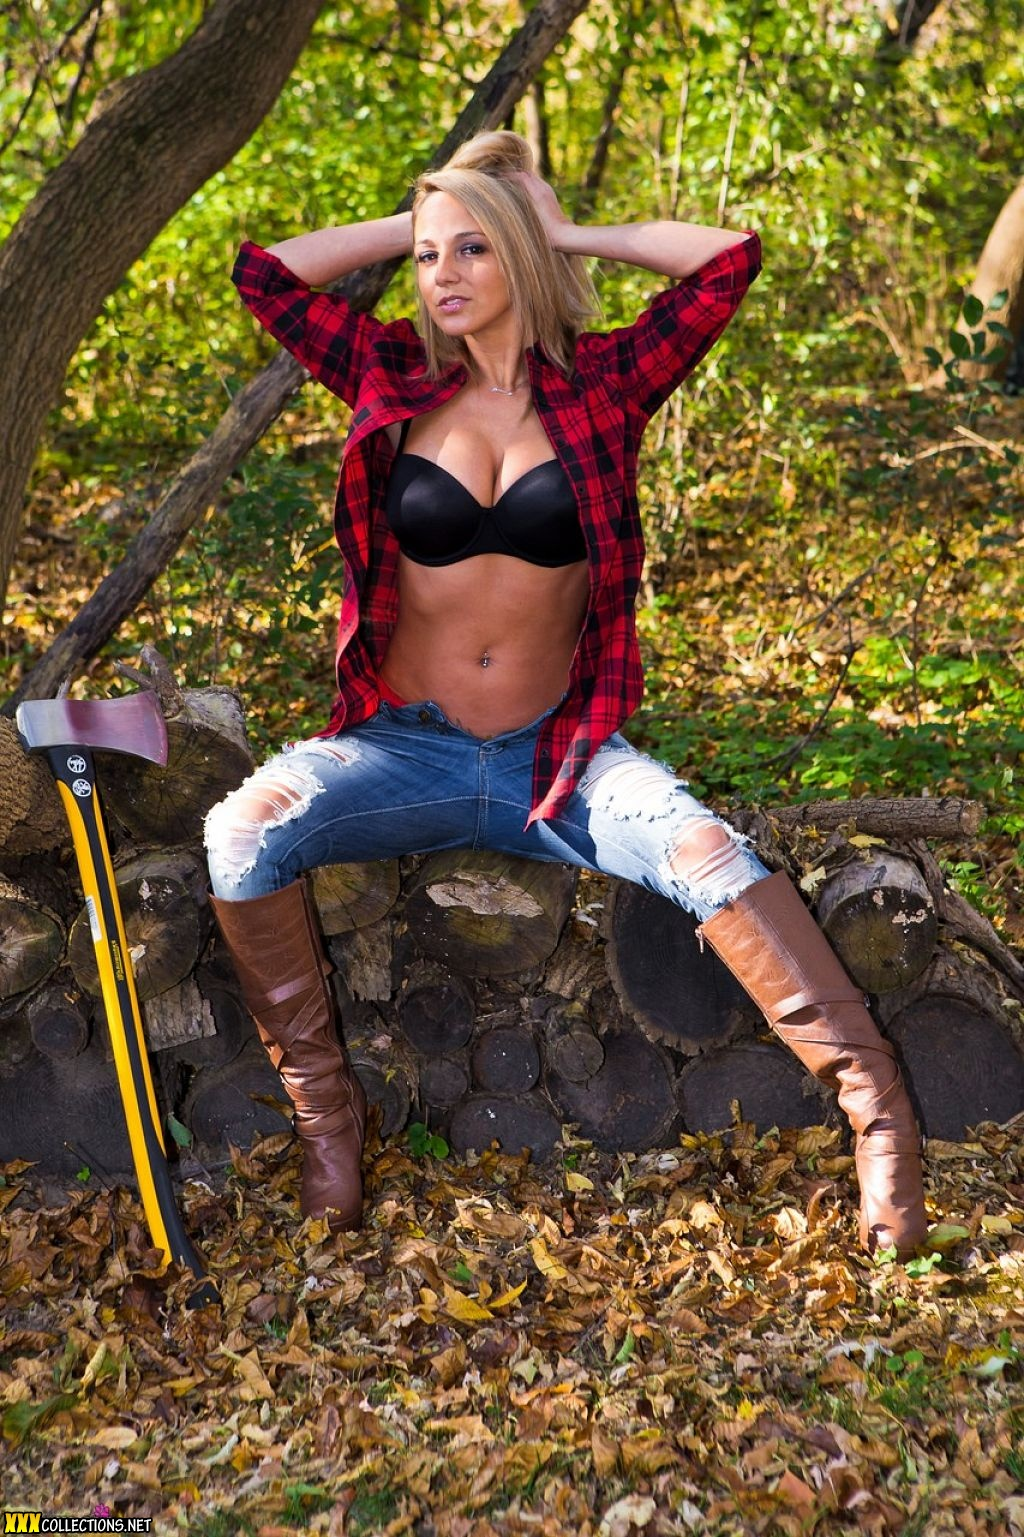 sexy Lumber jack links